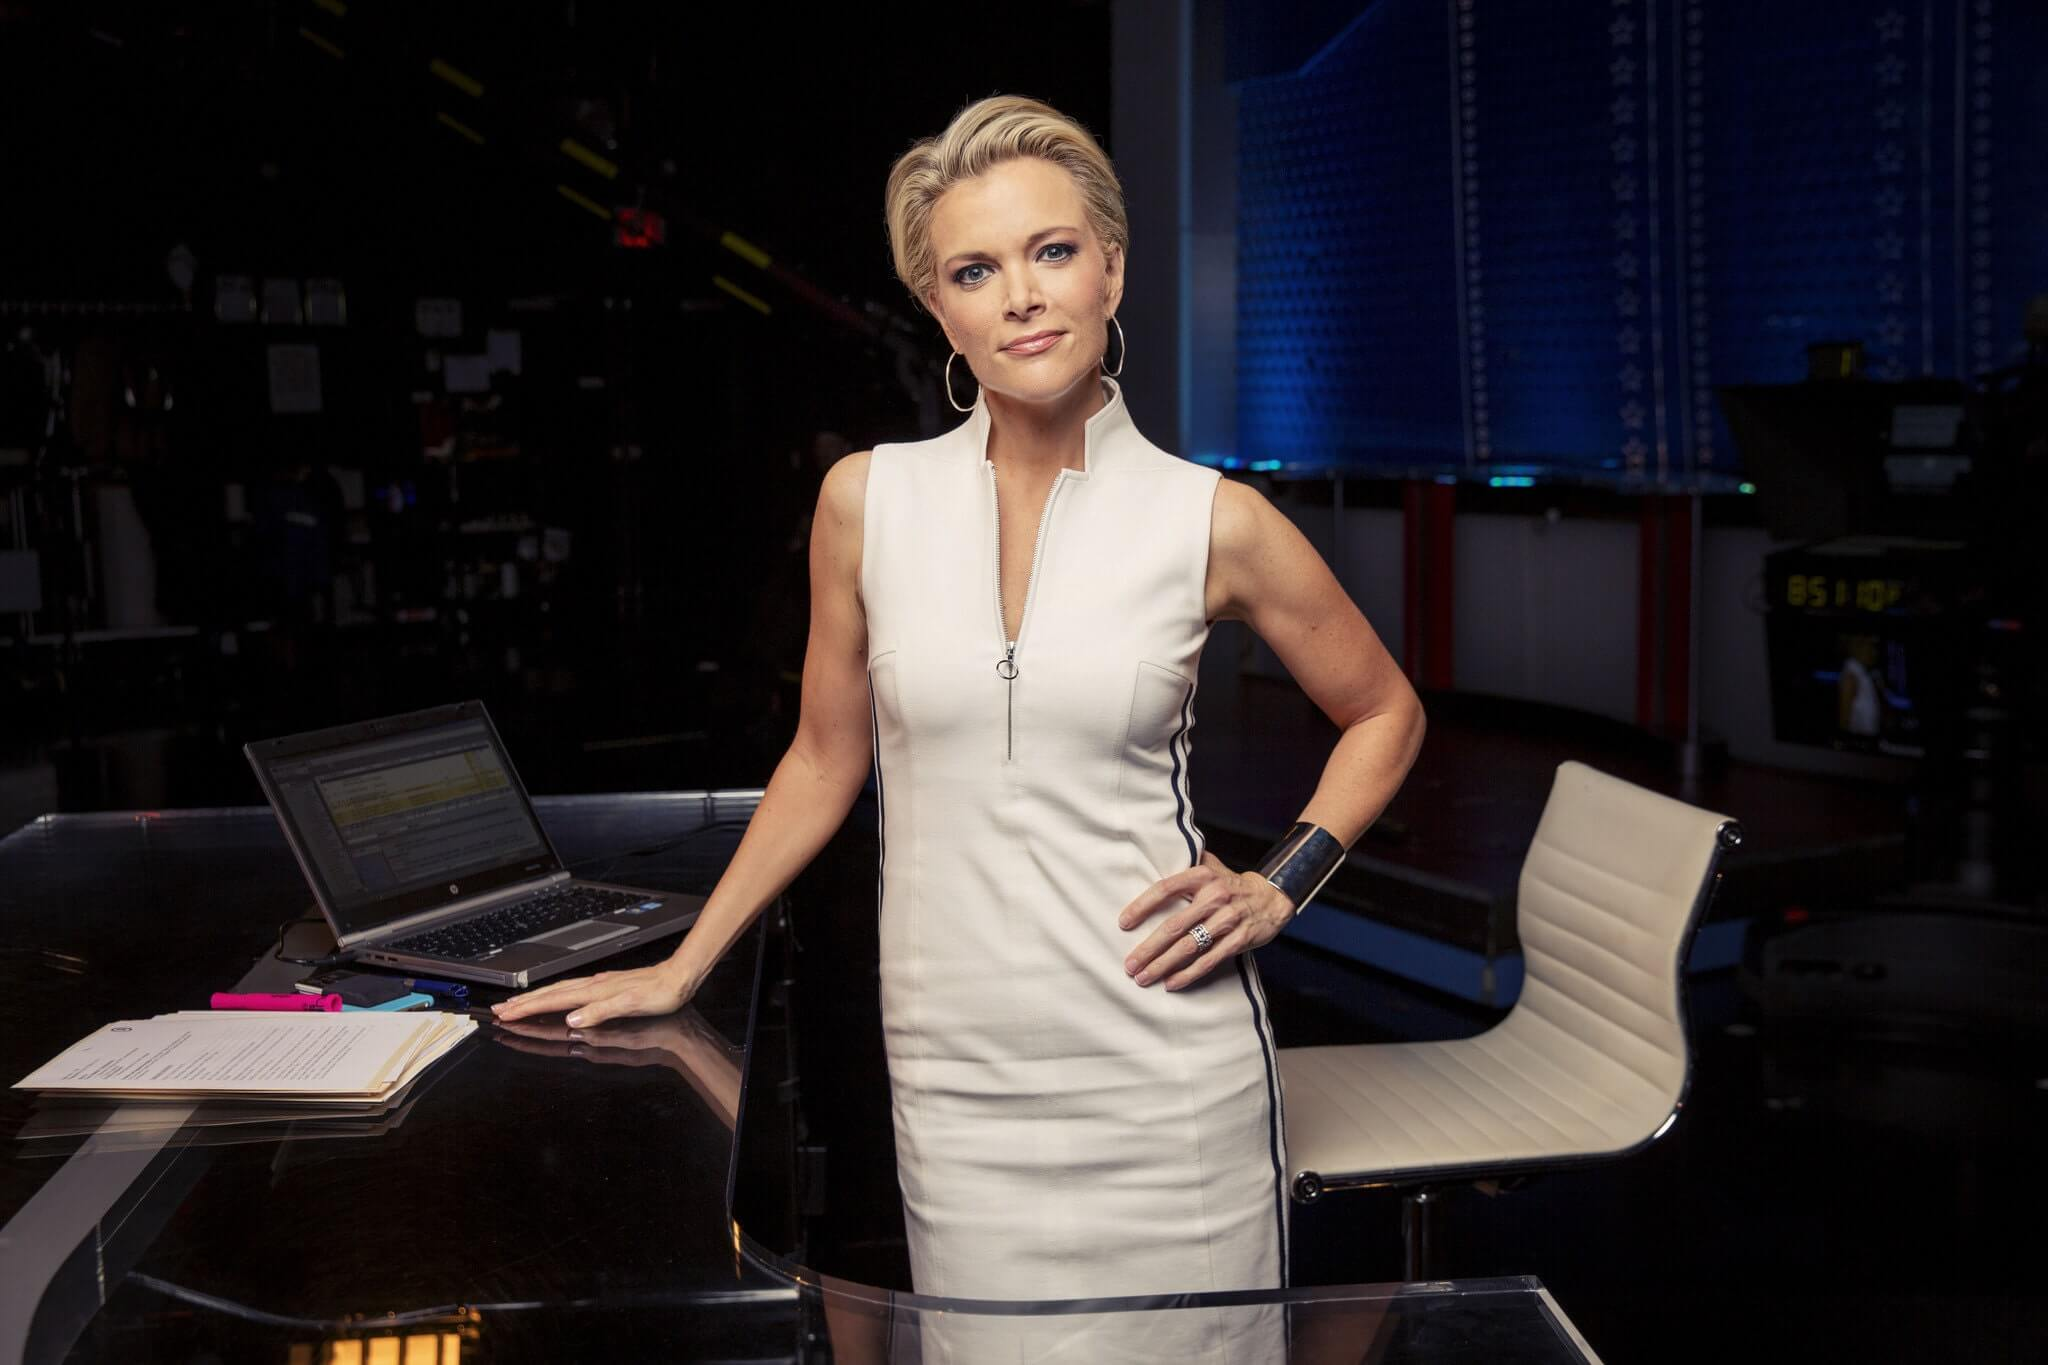 megyn kelly hot cleavage picture